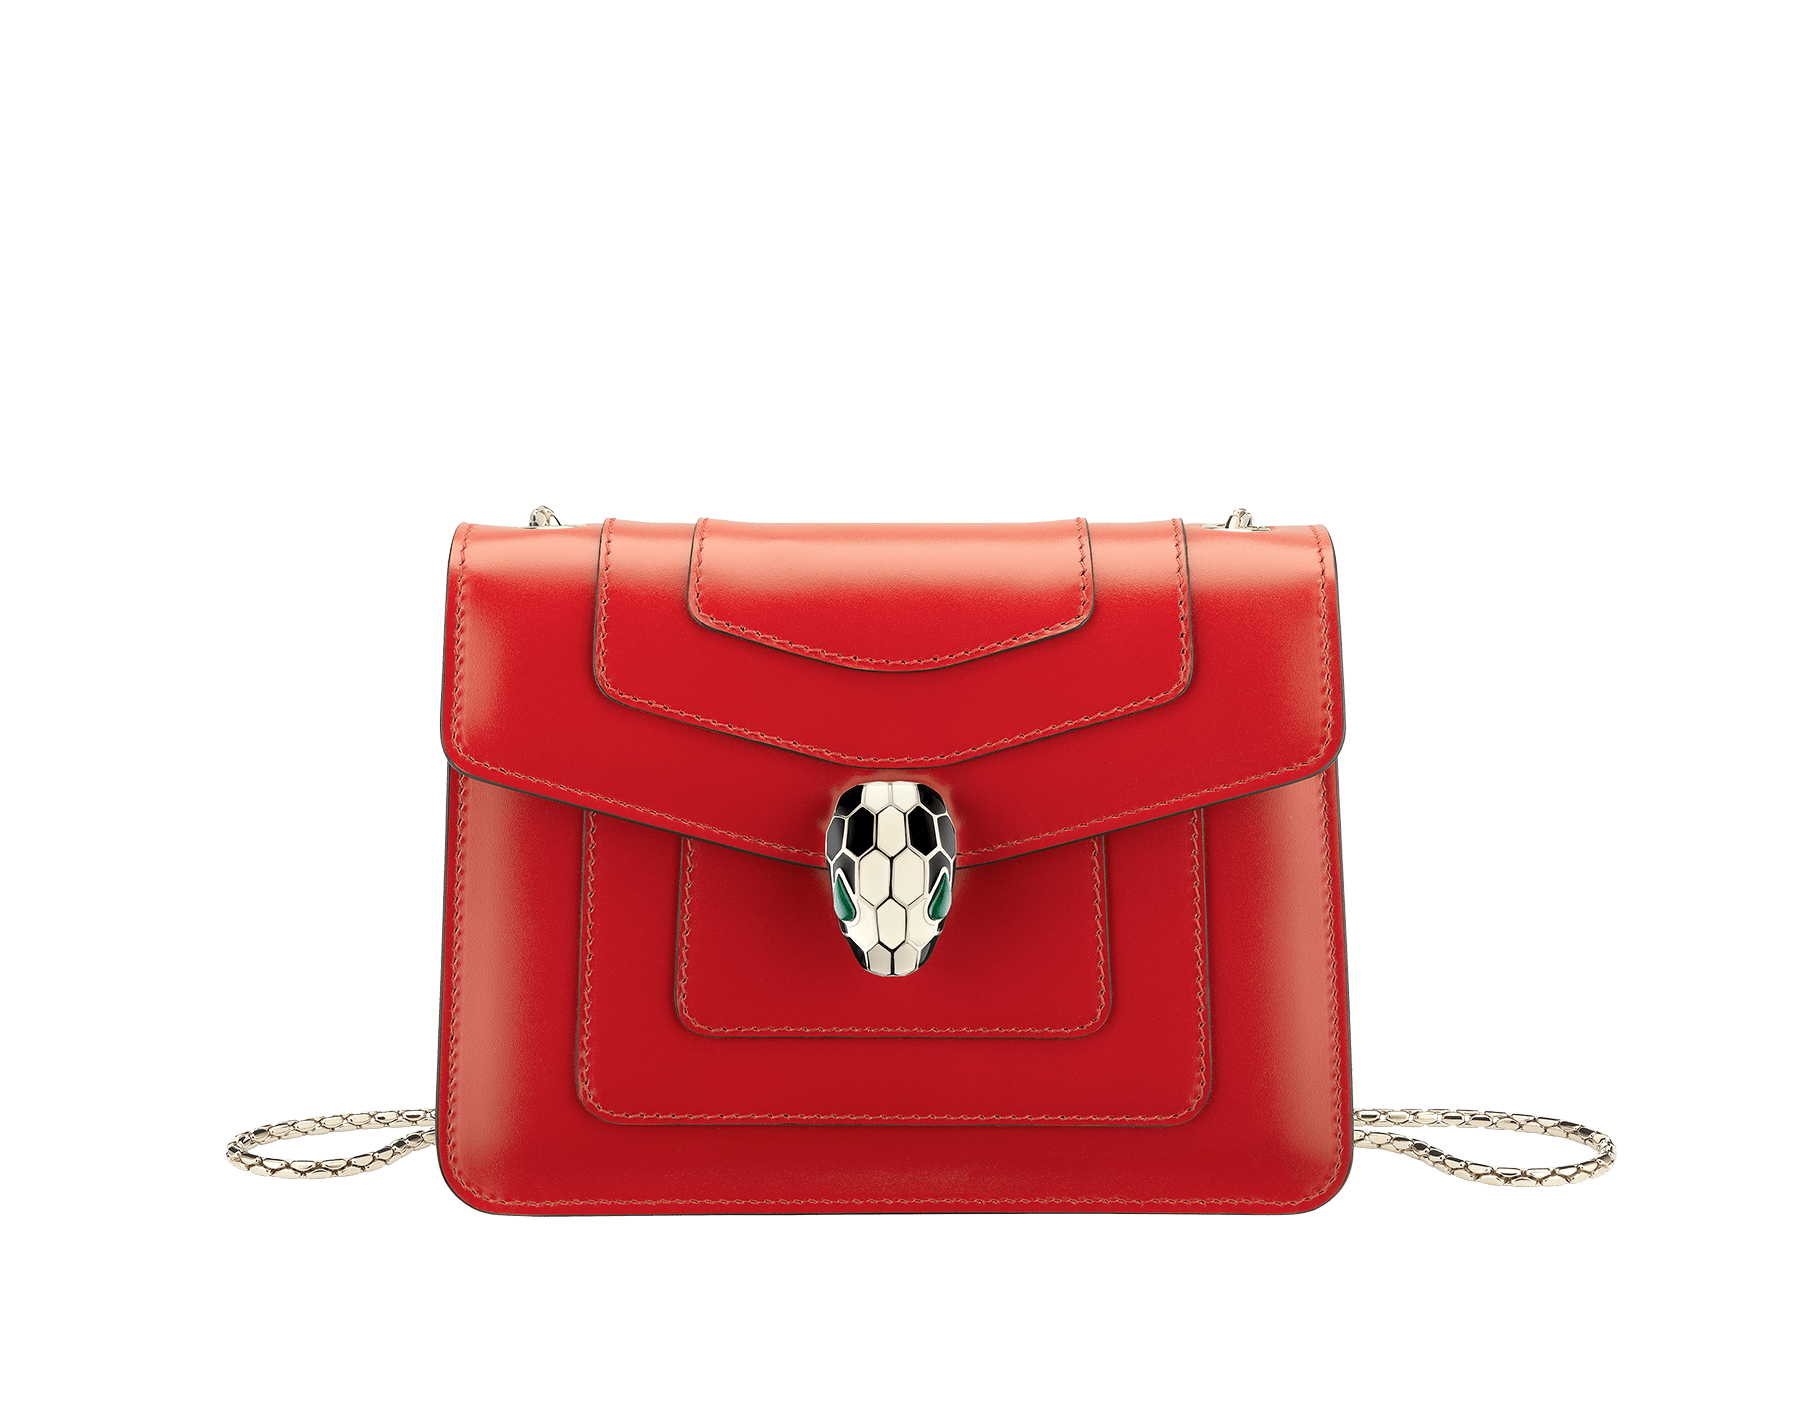 """Serpenti Forever "" crossbody bag in carmine jasper calf leather. Iconic snakehead closure in light gold plated brass enriched with black and white enamel and green malachite eyes 287013 image 1"